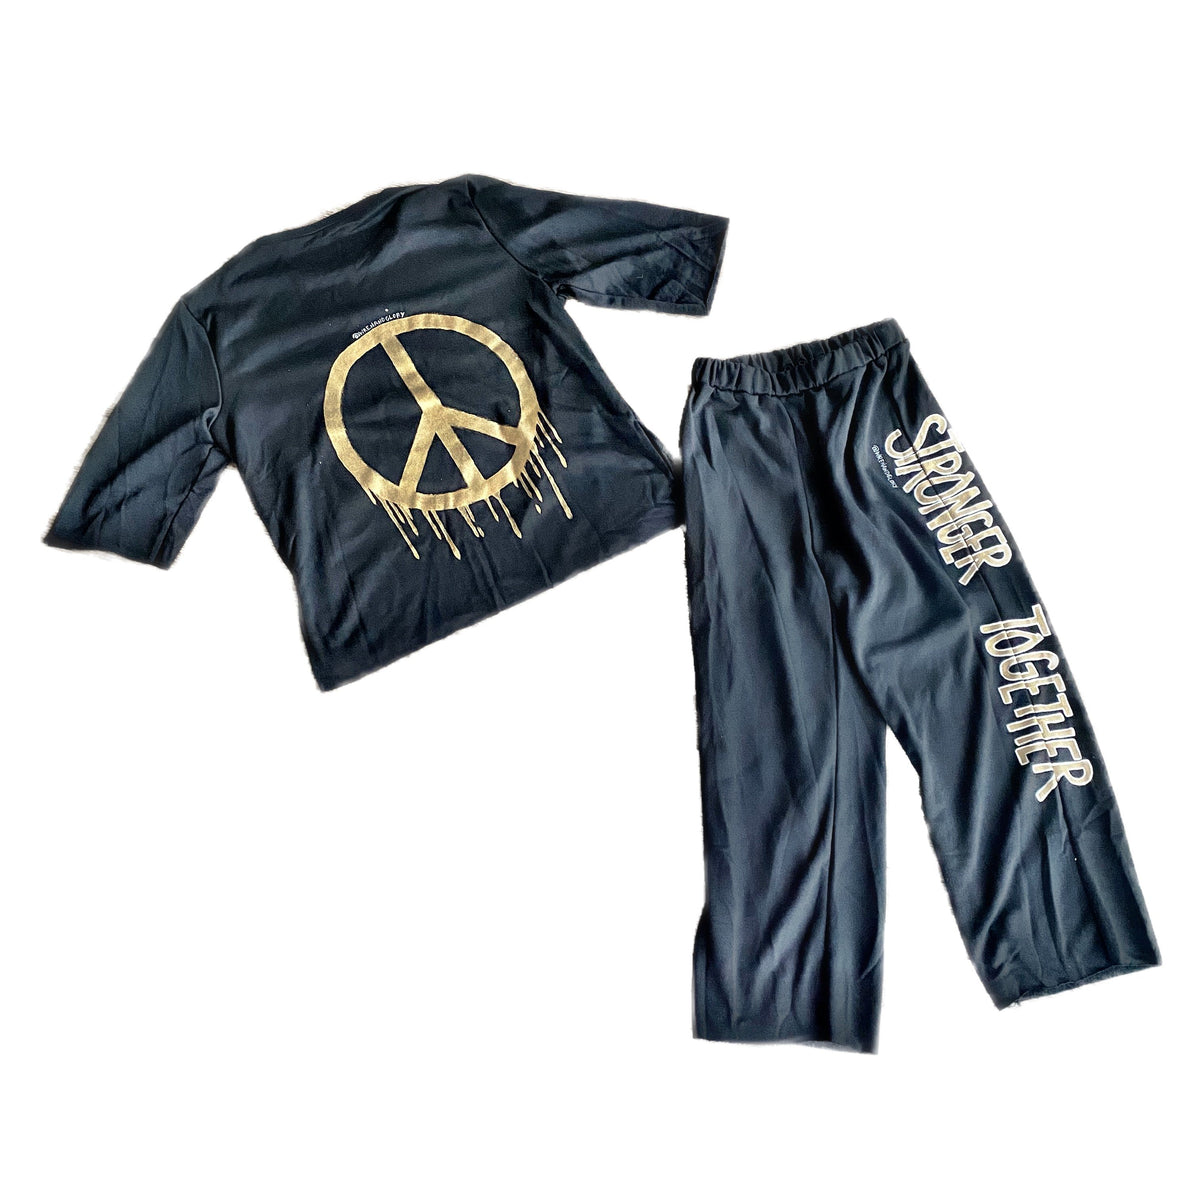 'TOGETHER FOR PEACE' SWEAT SET